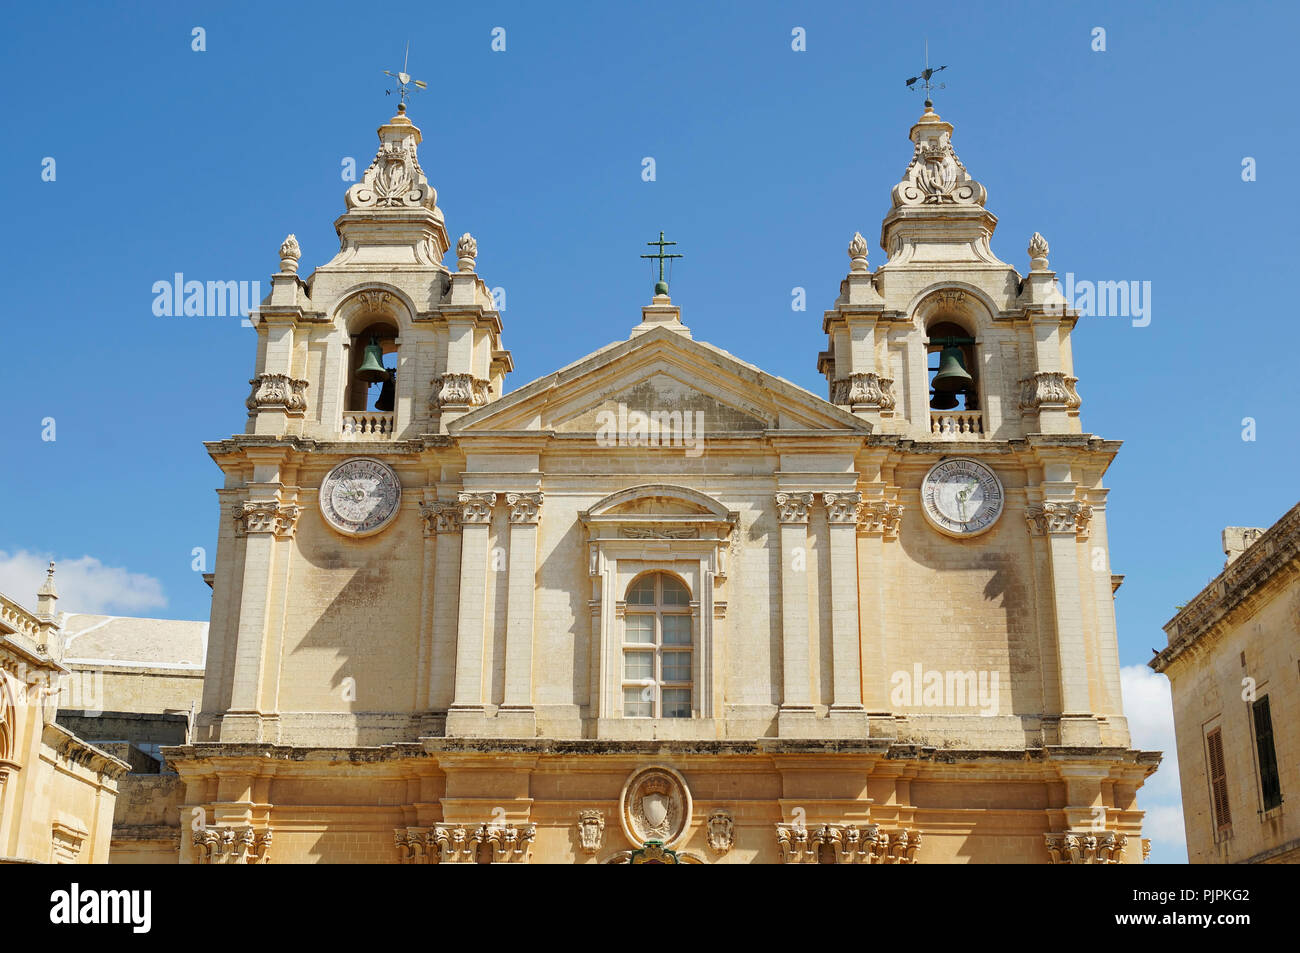 St. Paul's Cathedral in Mdina, Malta - Stock Image